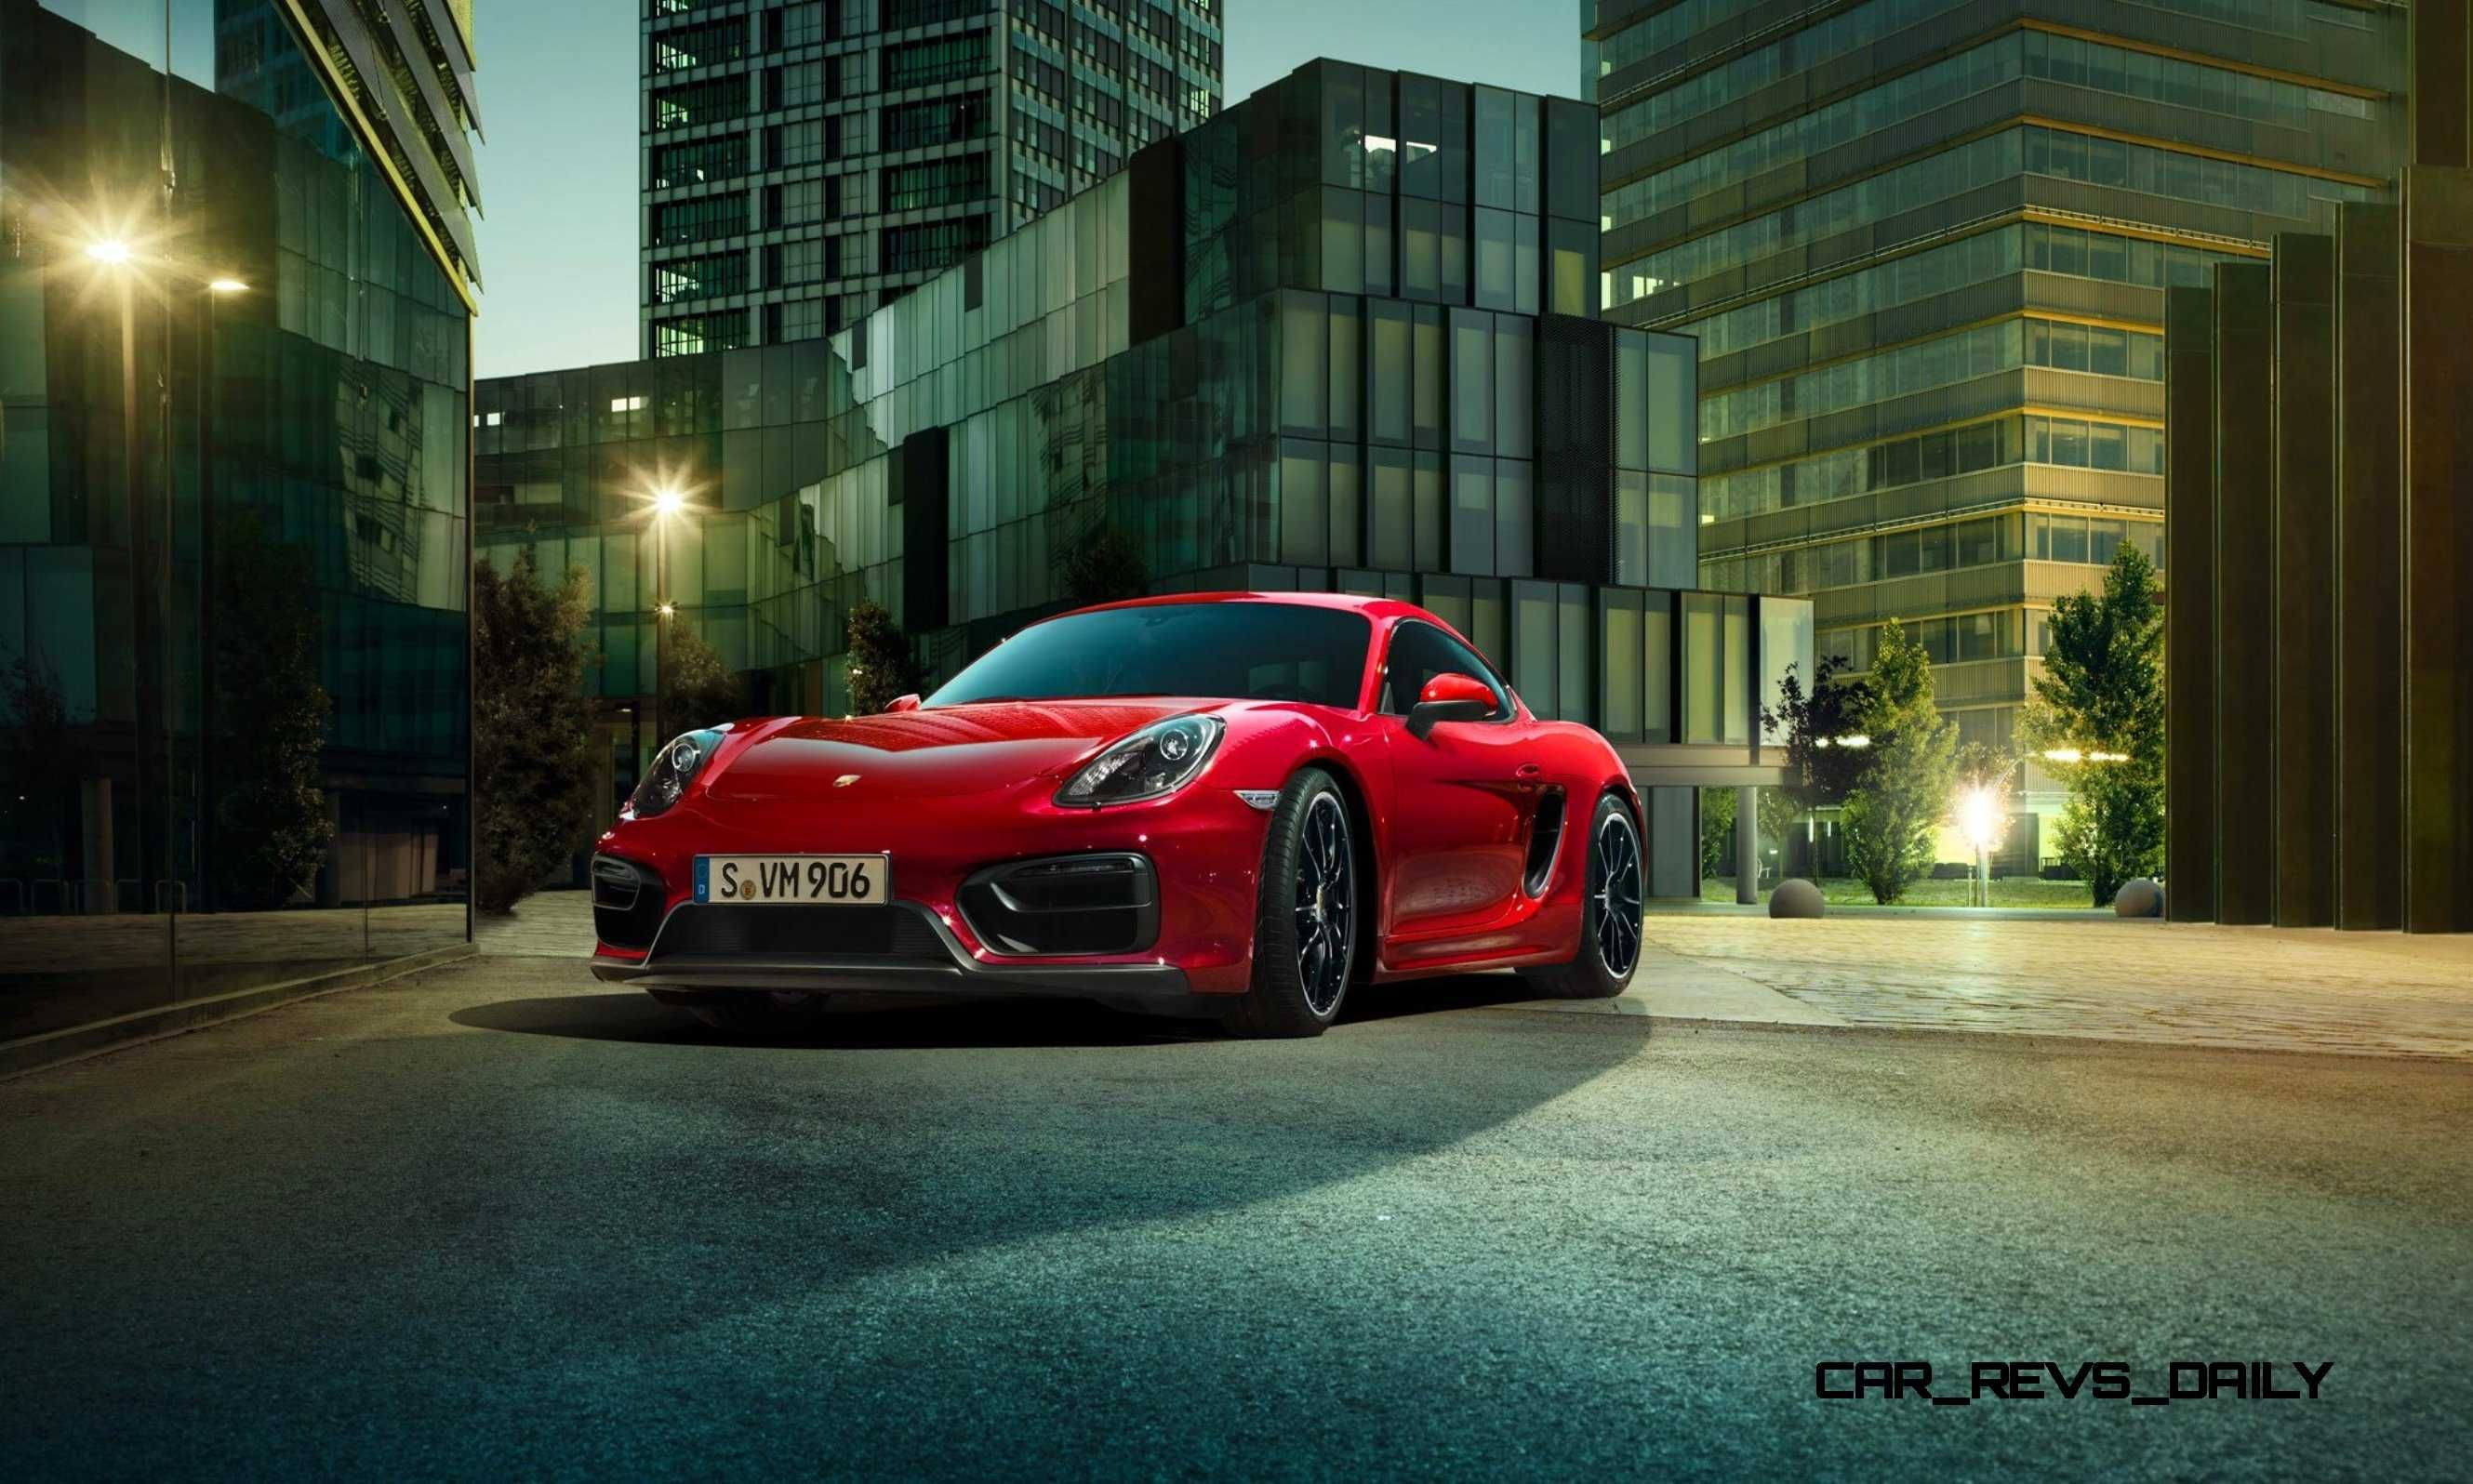 Update1 70 New Pics – 2015 Porsche Boxster and Cayman GTS Feature Ripping Exhaust!